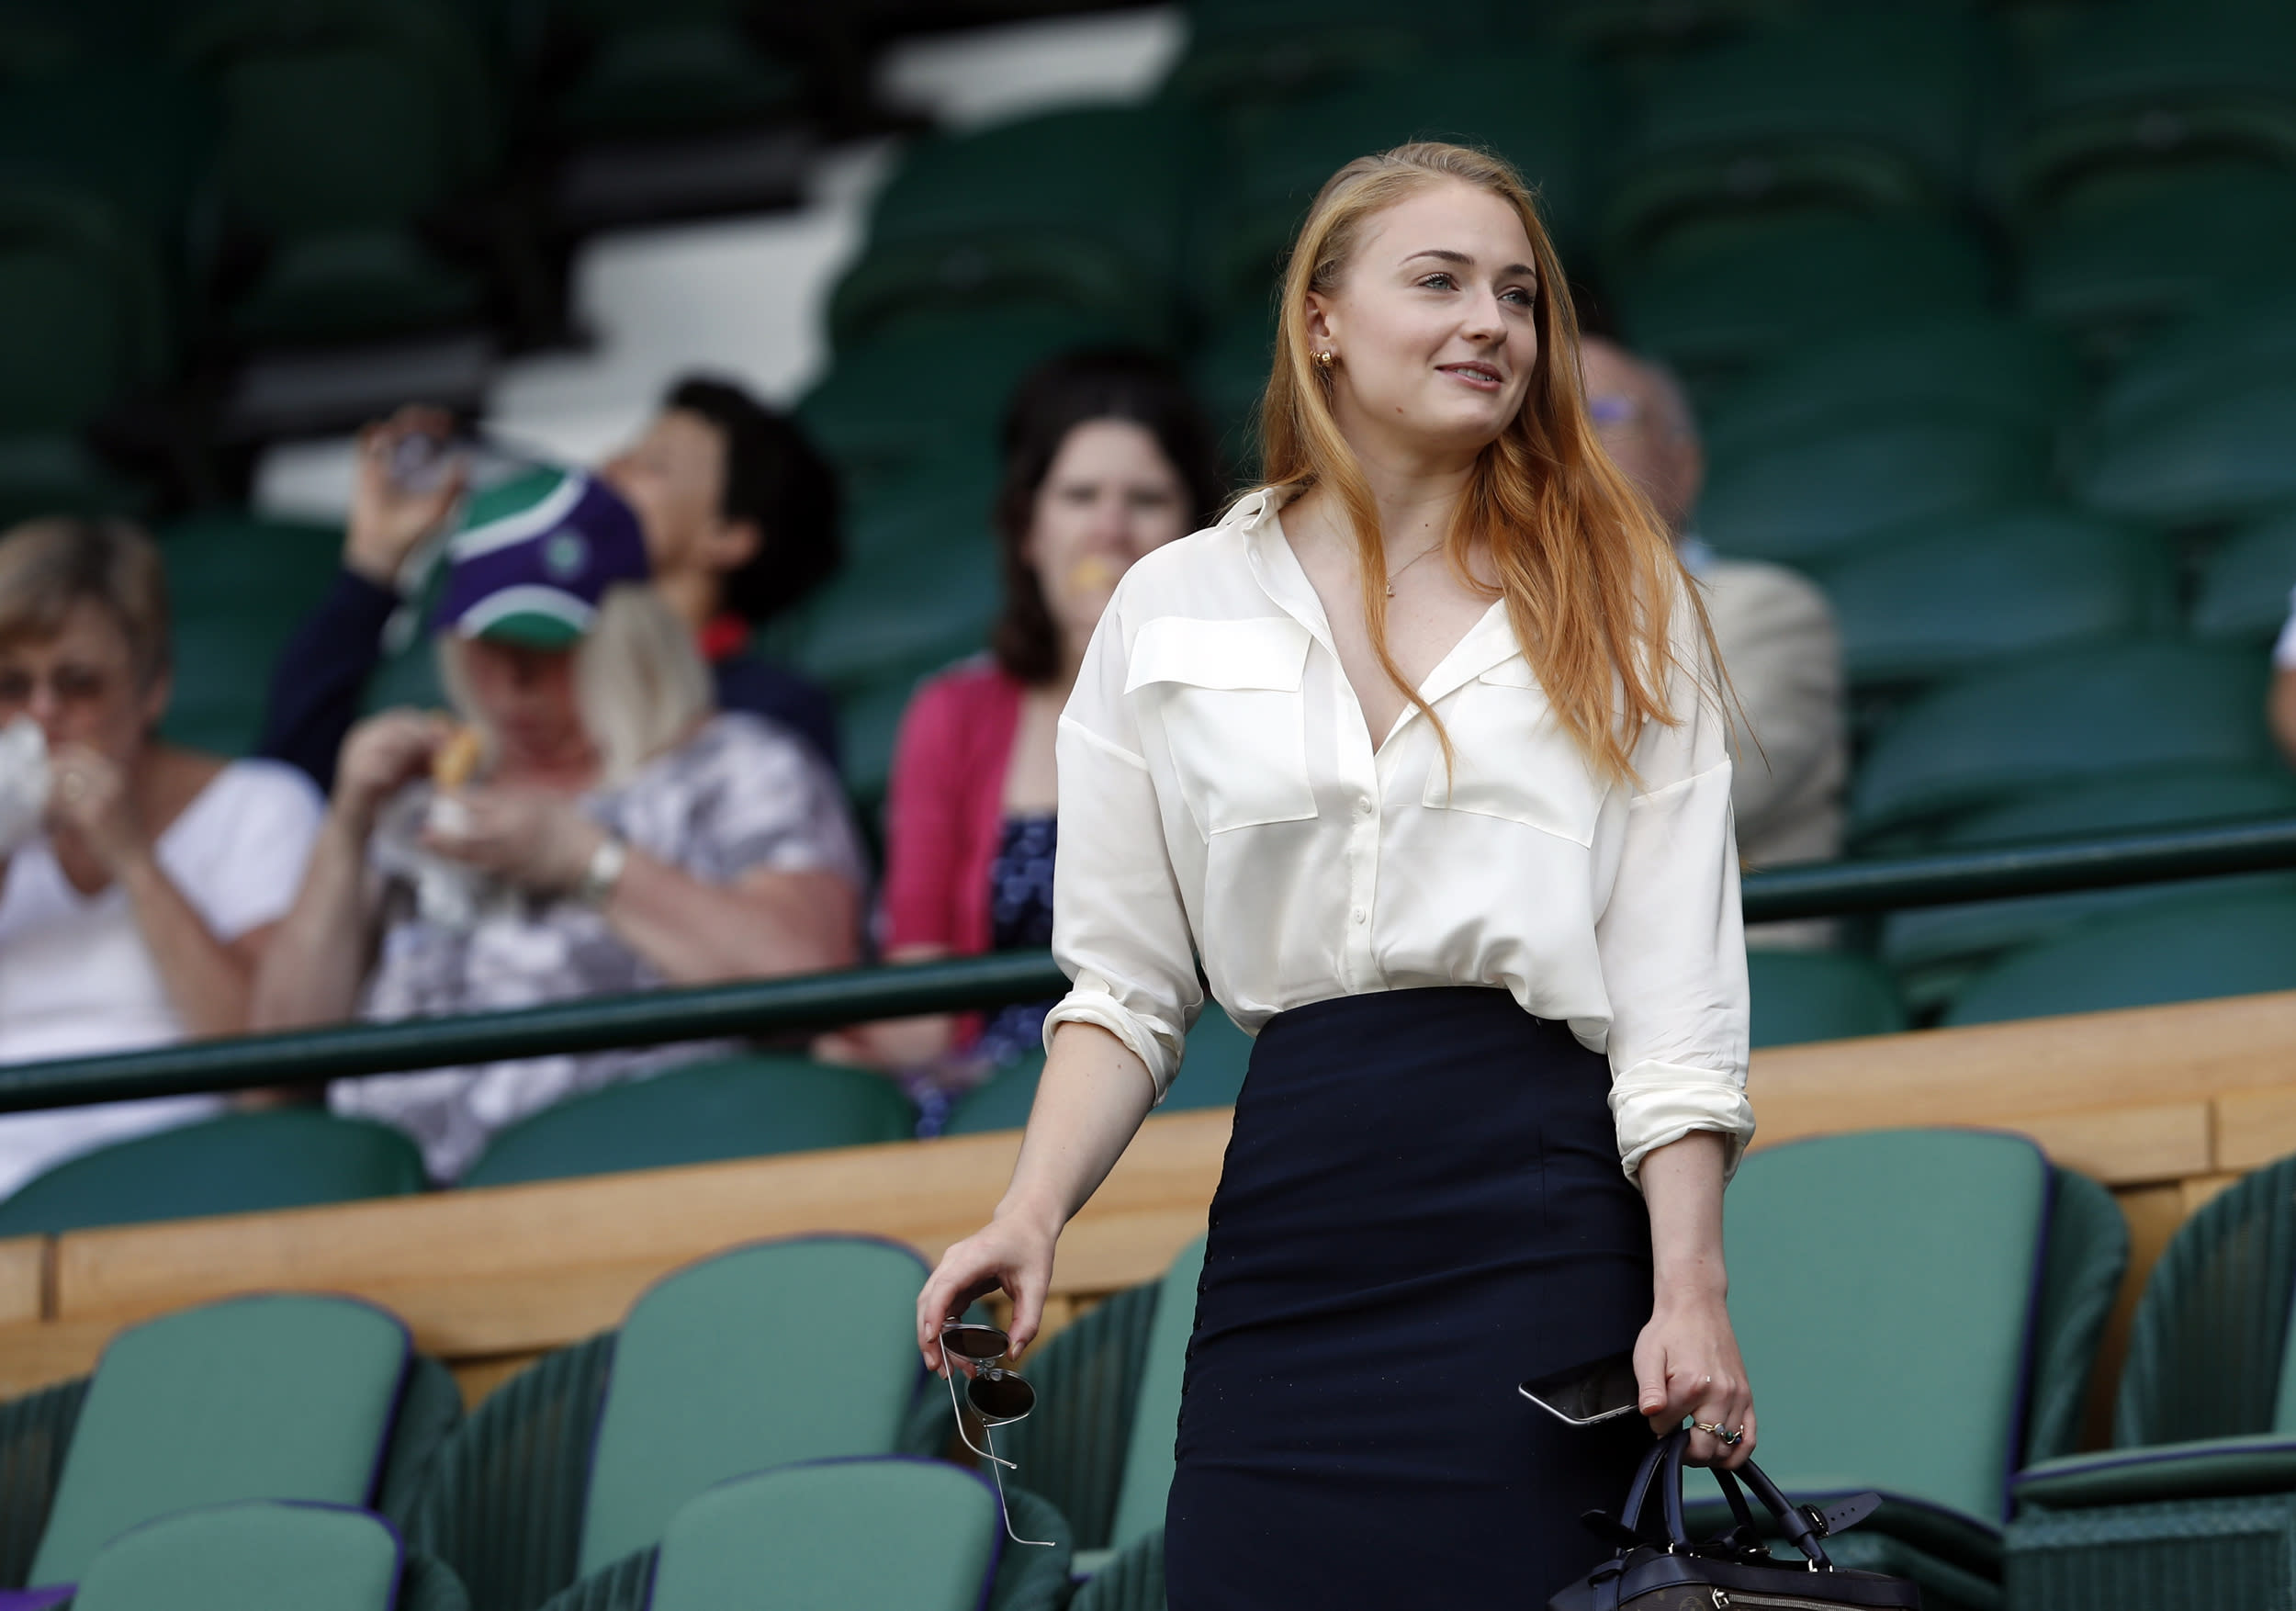 Actress Sophie Turner takes a seat in the Royal Box on day eleven of the Wimbledon Tennis Championships in London, Thursday, July 7, 2016. (AP Photo/Ben Curtis, pool)